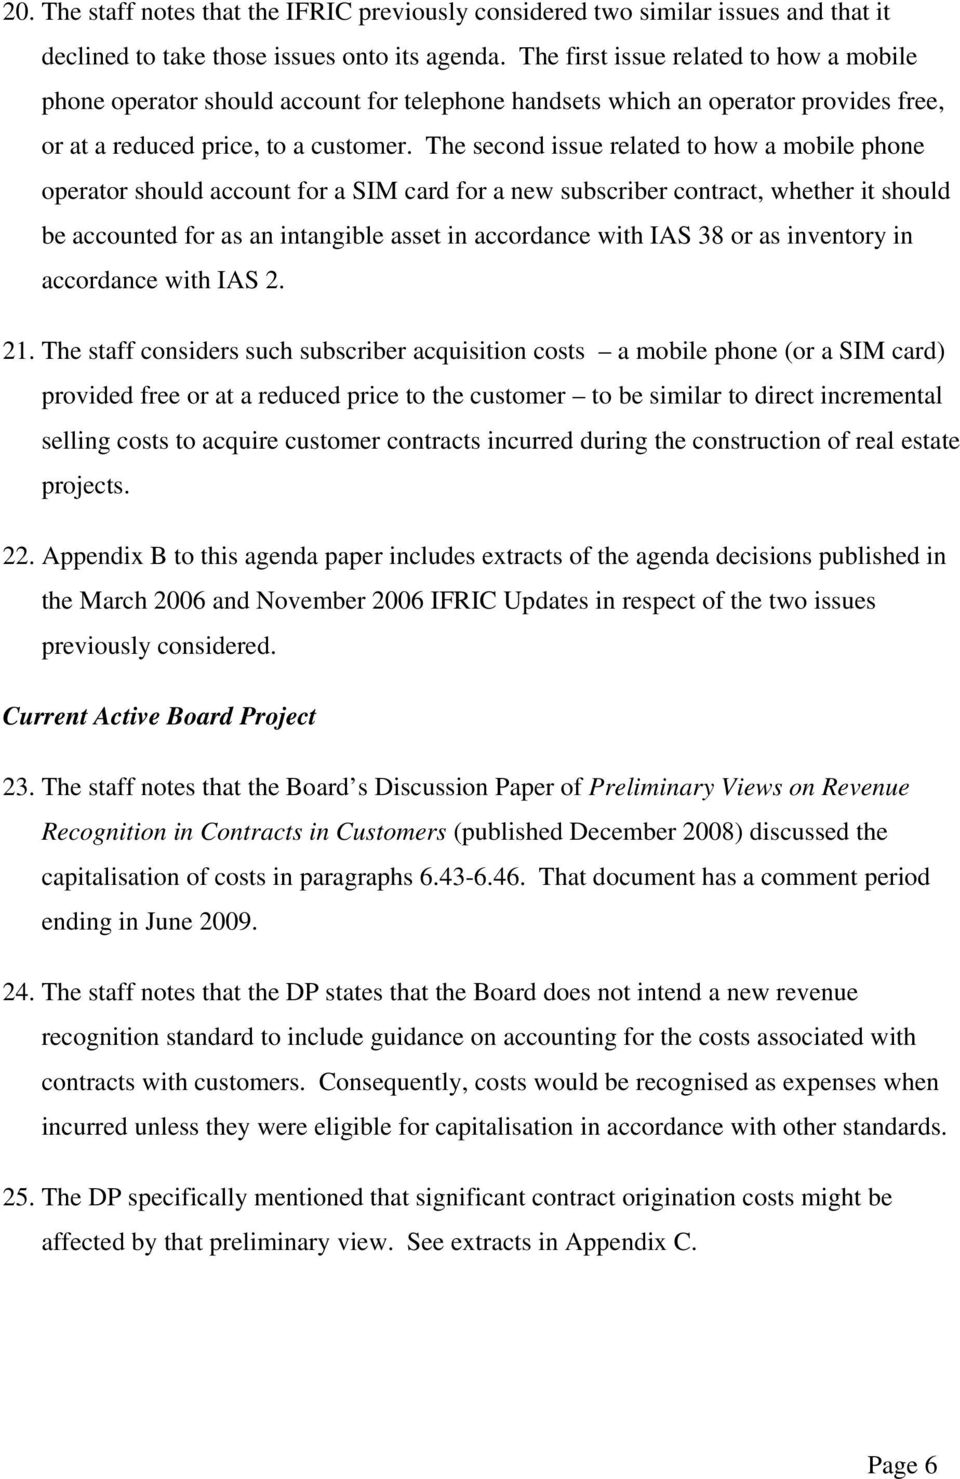 The second issue related to how a mobile phone operator should account for a SIM card for a new subscriber contract, whether it should be accounted for as an intangible asset in accordance with IAS